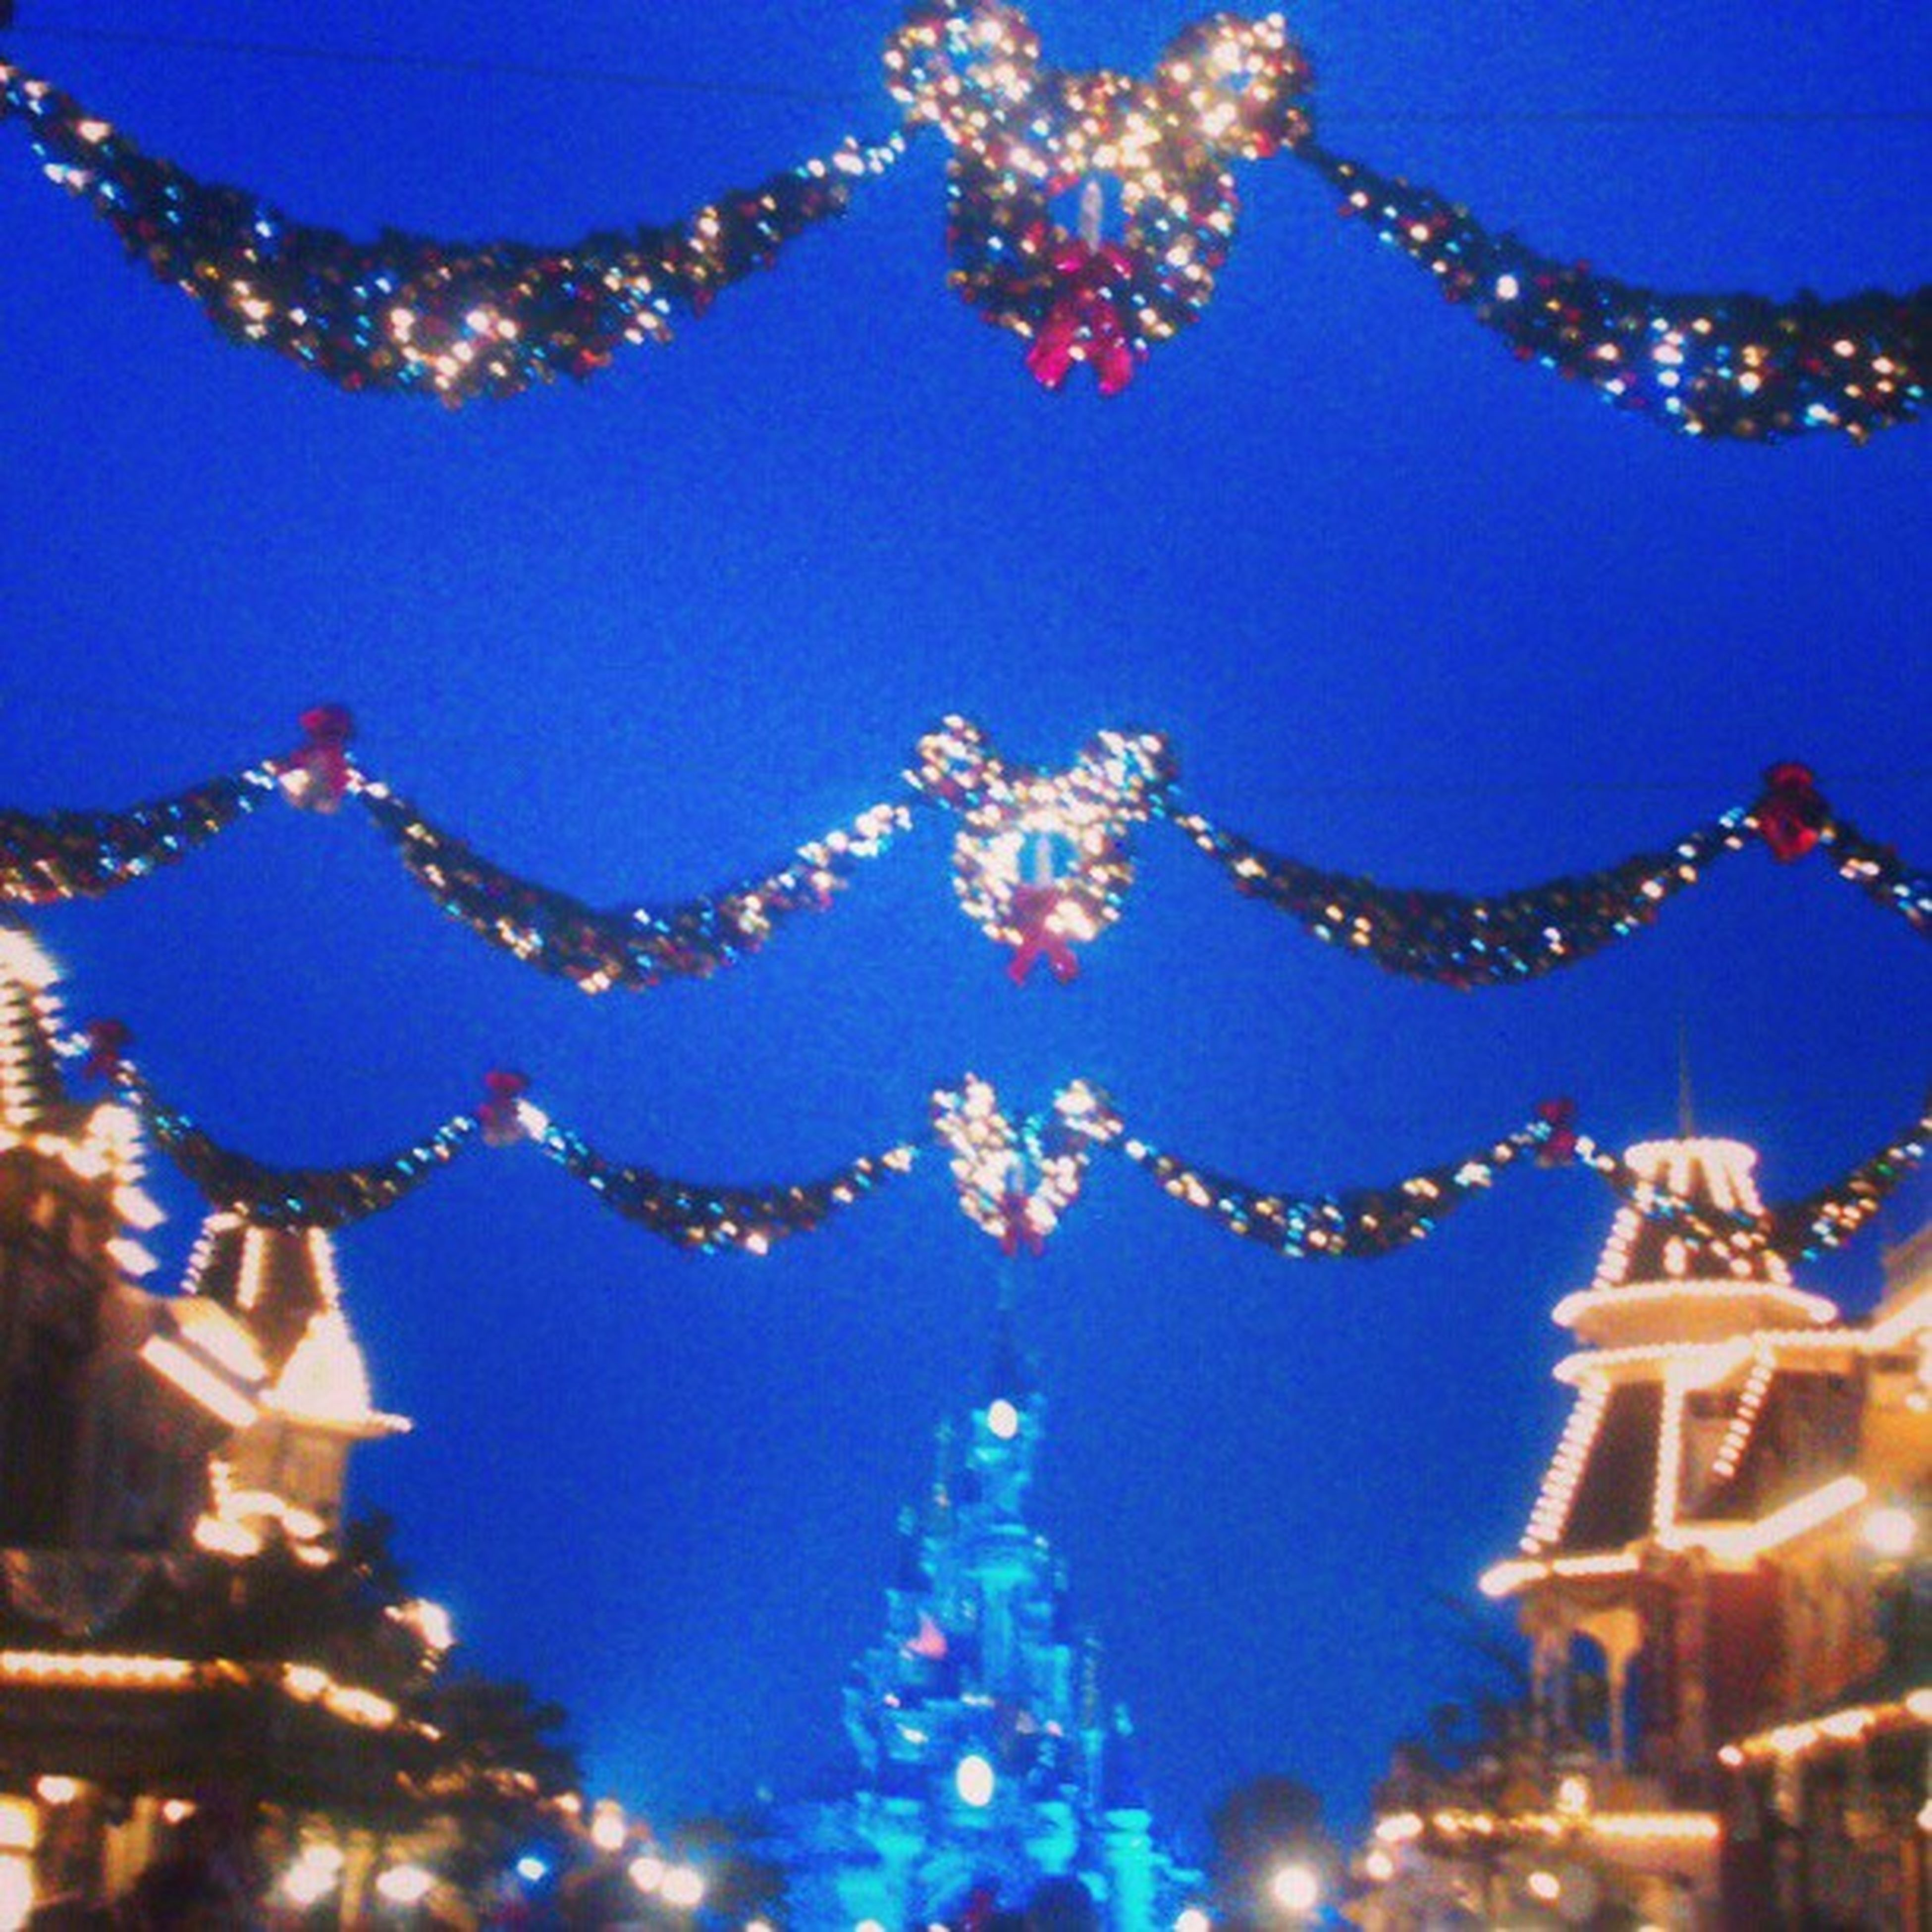 illuminated, decoration, blue, low angle view, architecture, clear sky, night, built structure, travel destinations, celebration, famous place, christmas decoration, building exterior, christmas, tradition, christmas tree, christmas lights, international landmark, hanging, capital cities